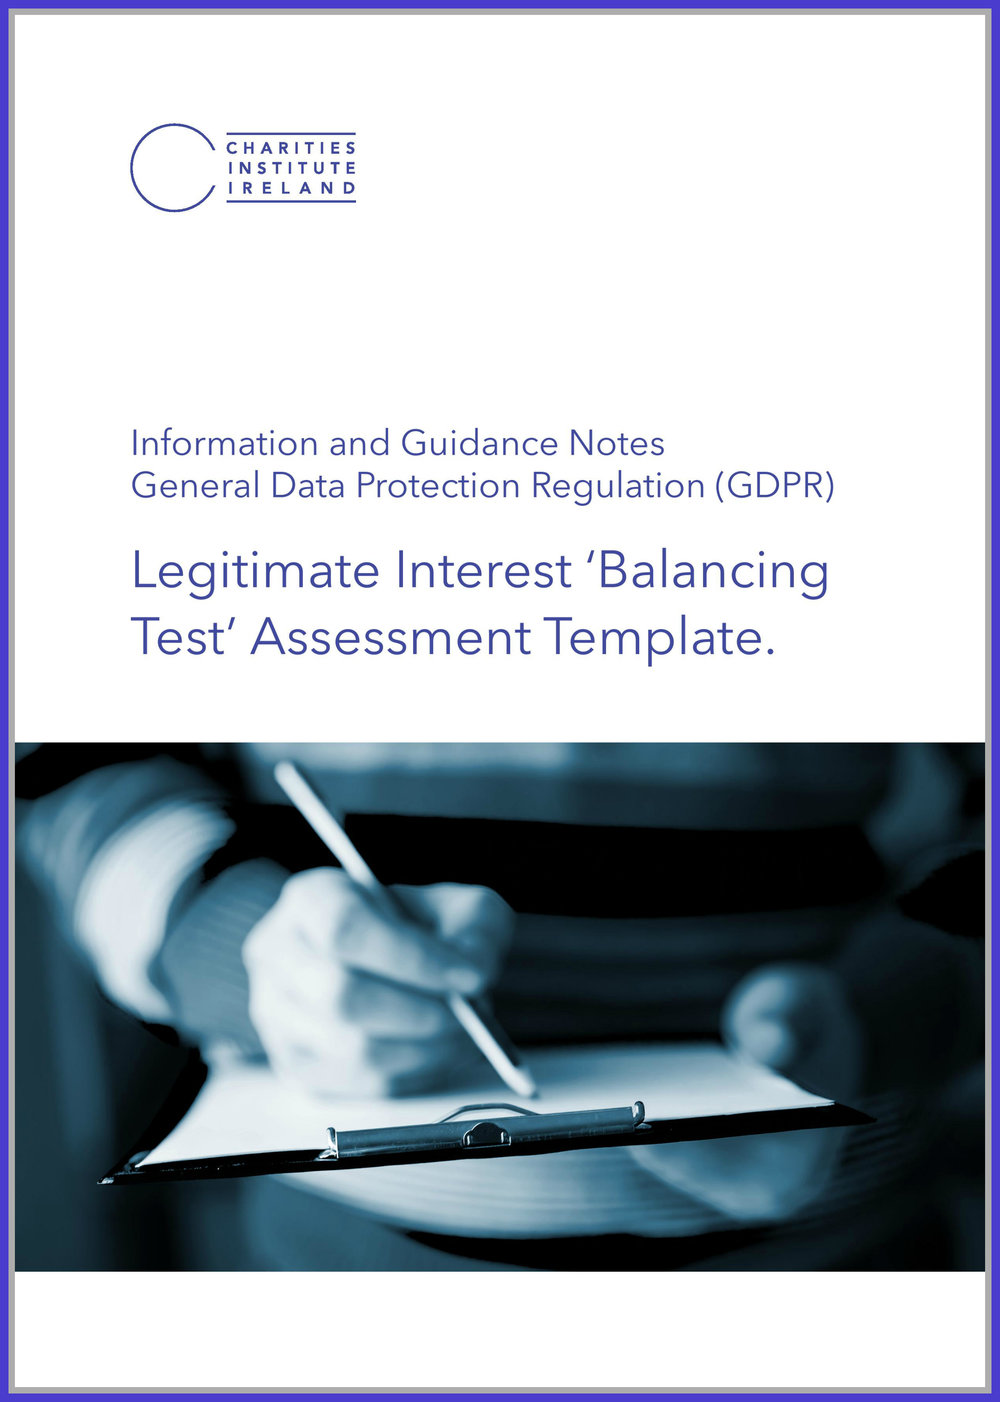 CII Guidance Notes Legitimate Interest  Balancing Test  Assessment cover pic.jpg